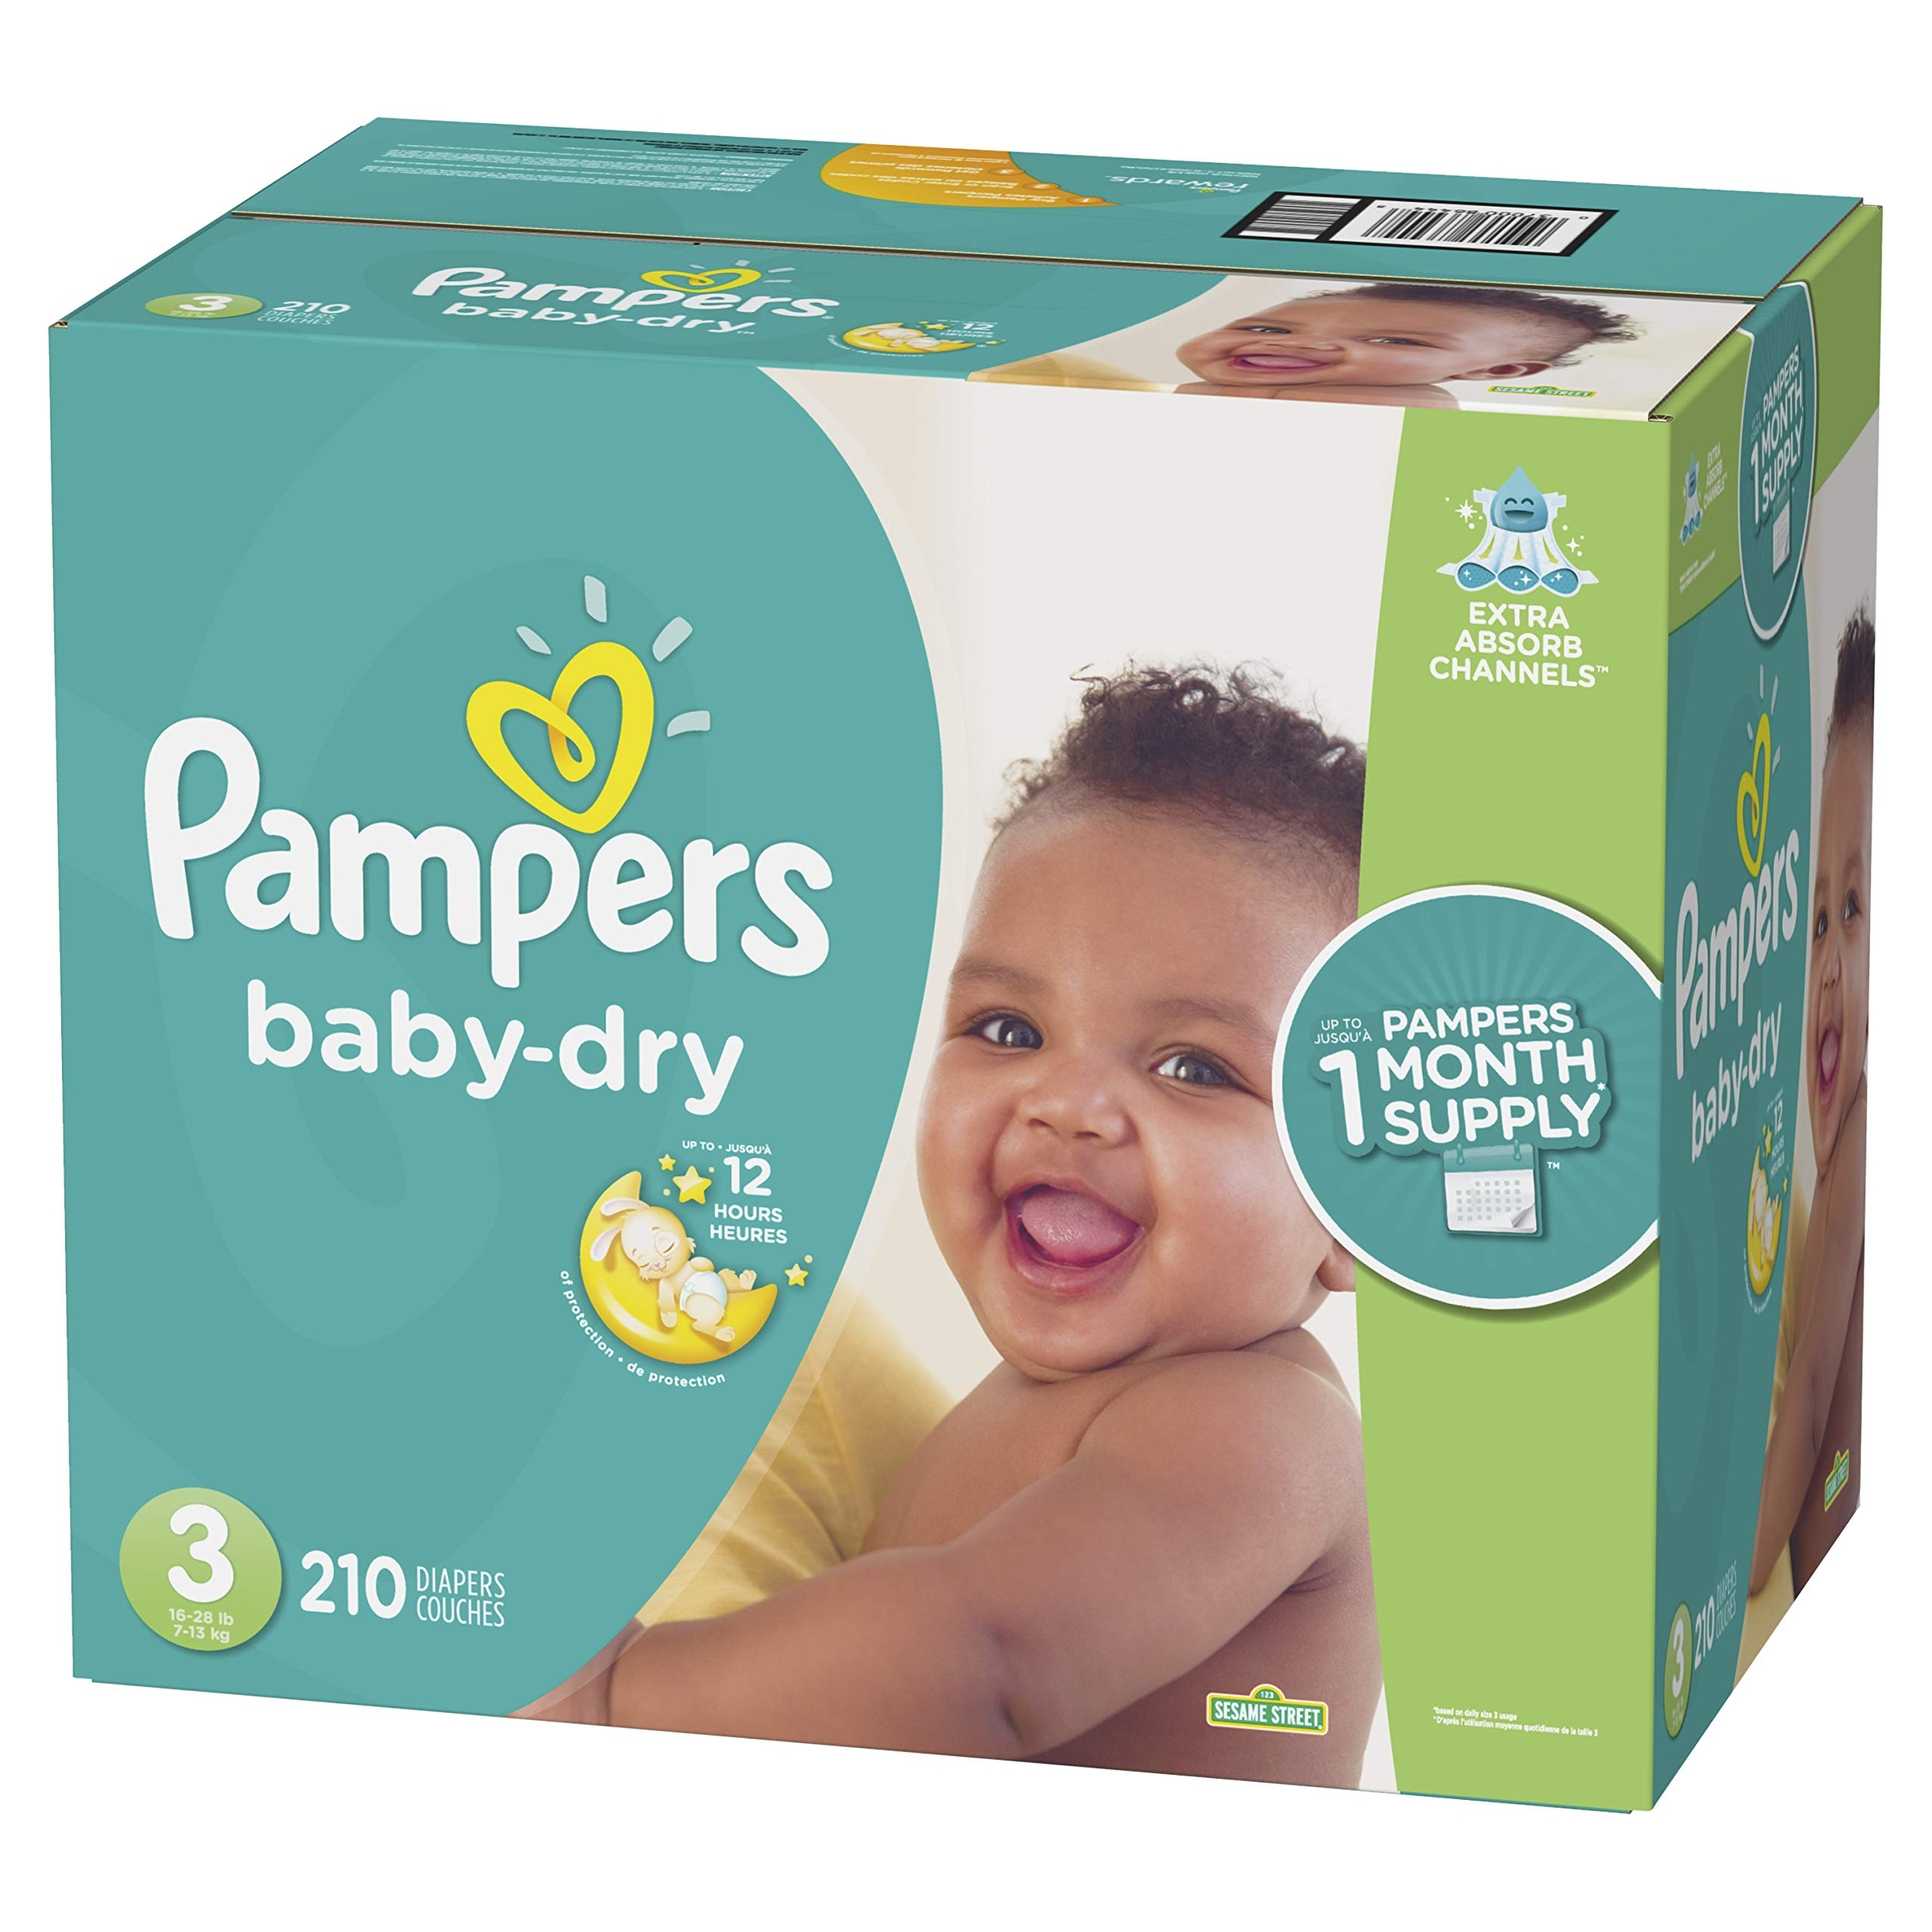 Diapers Size 3, 210 Count - Pampers Baby Dry Disposable Baby Diapers, ONE MONTH SUPPLY by Pampers